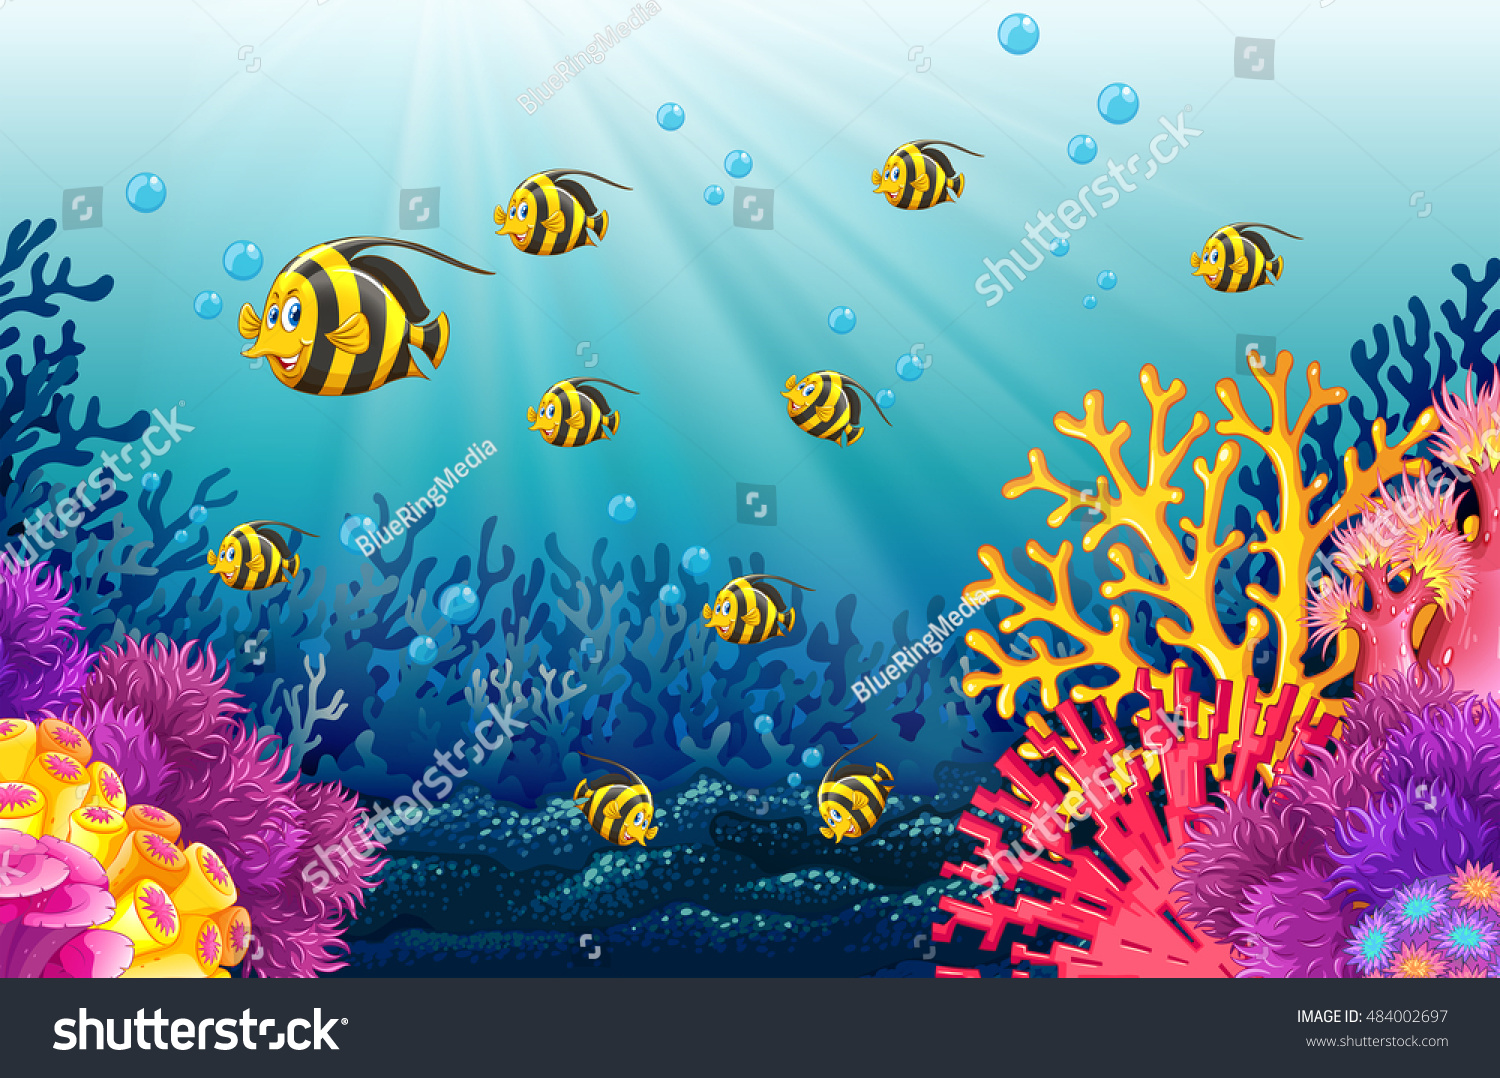 Lots of fish under the sea illustration 484002697 for Lots of fish